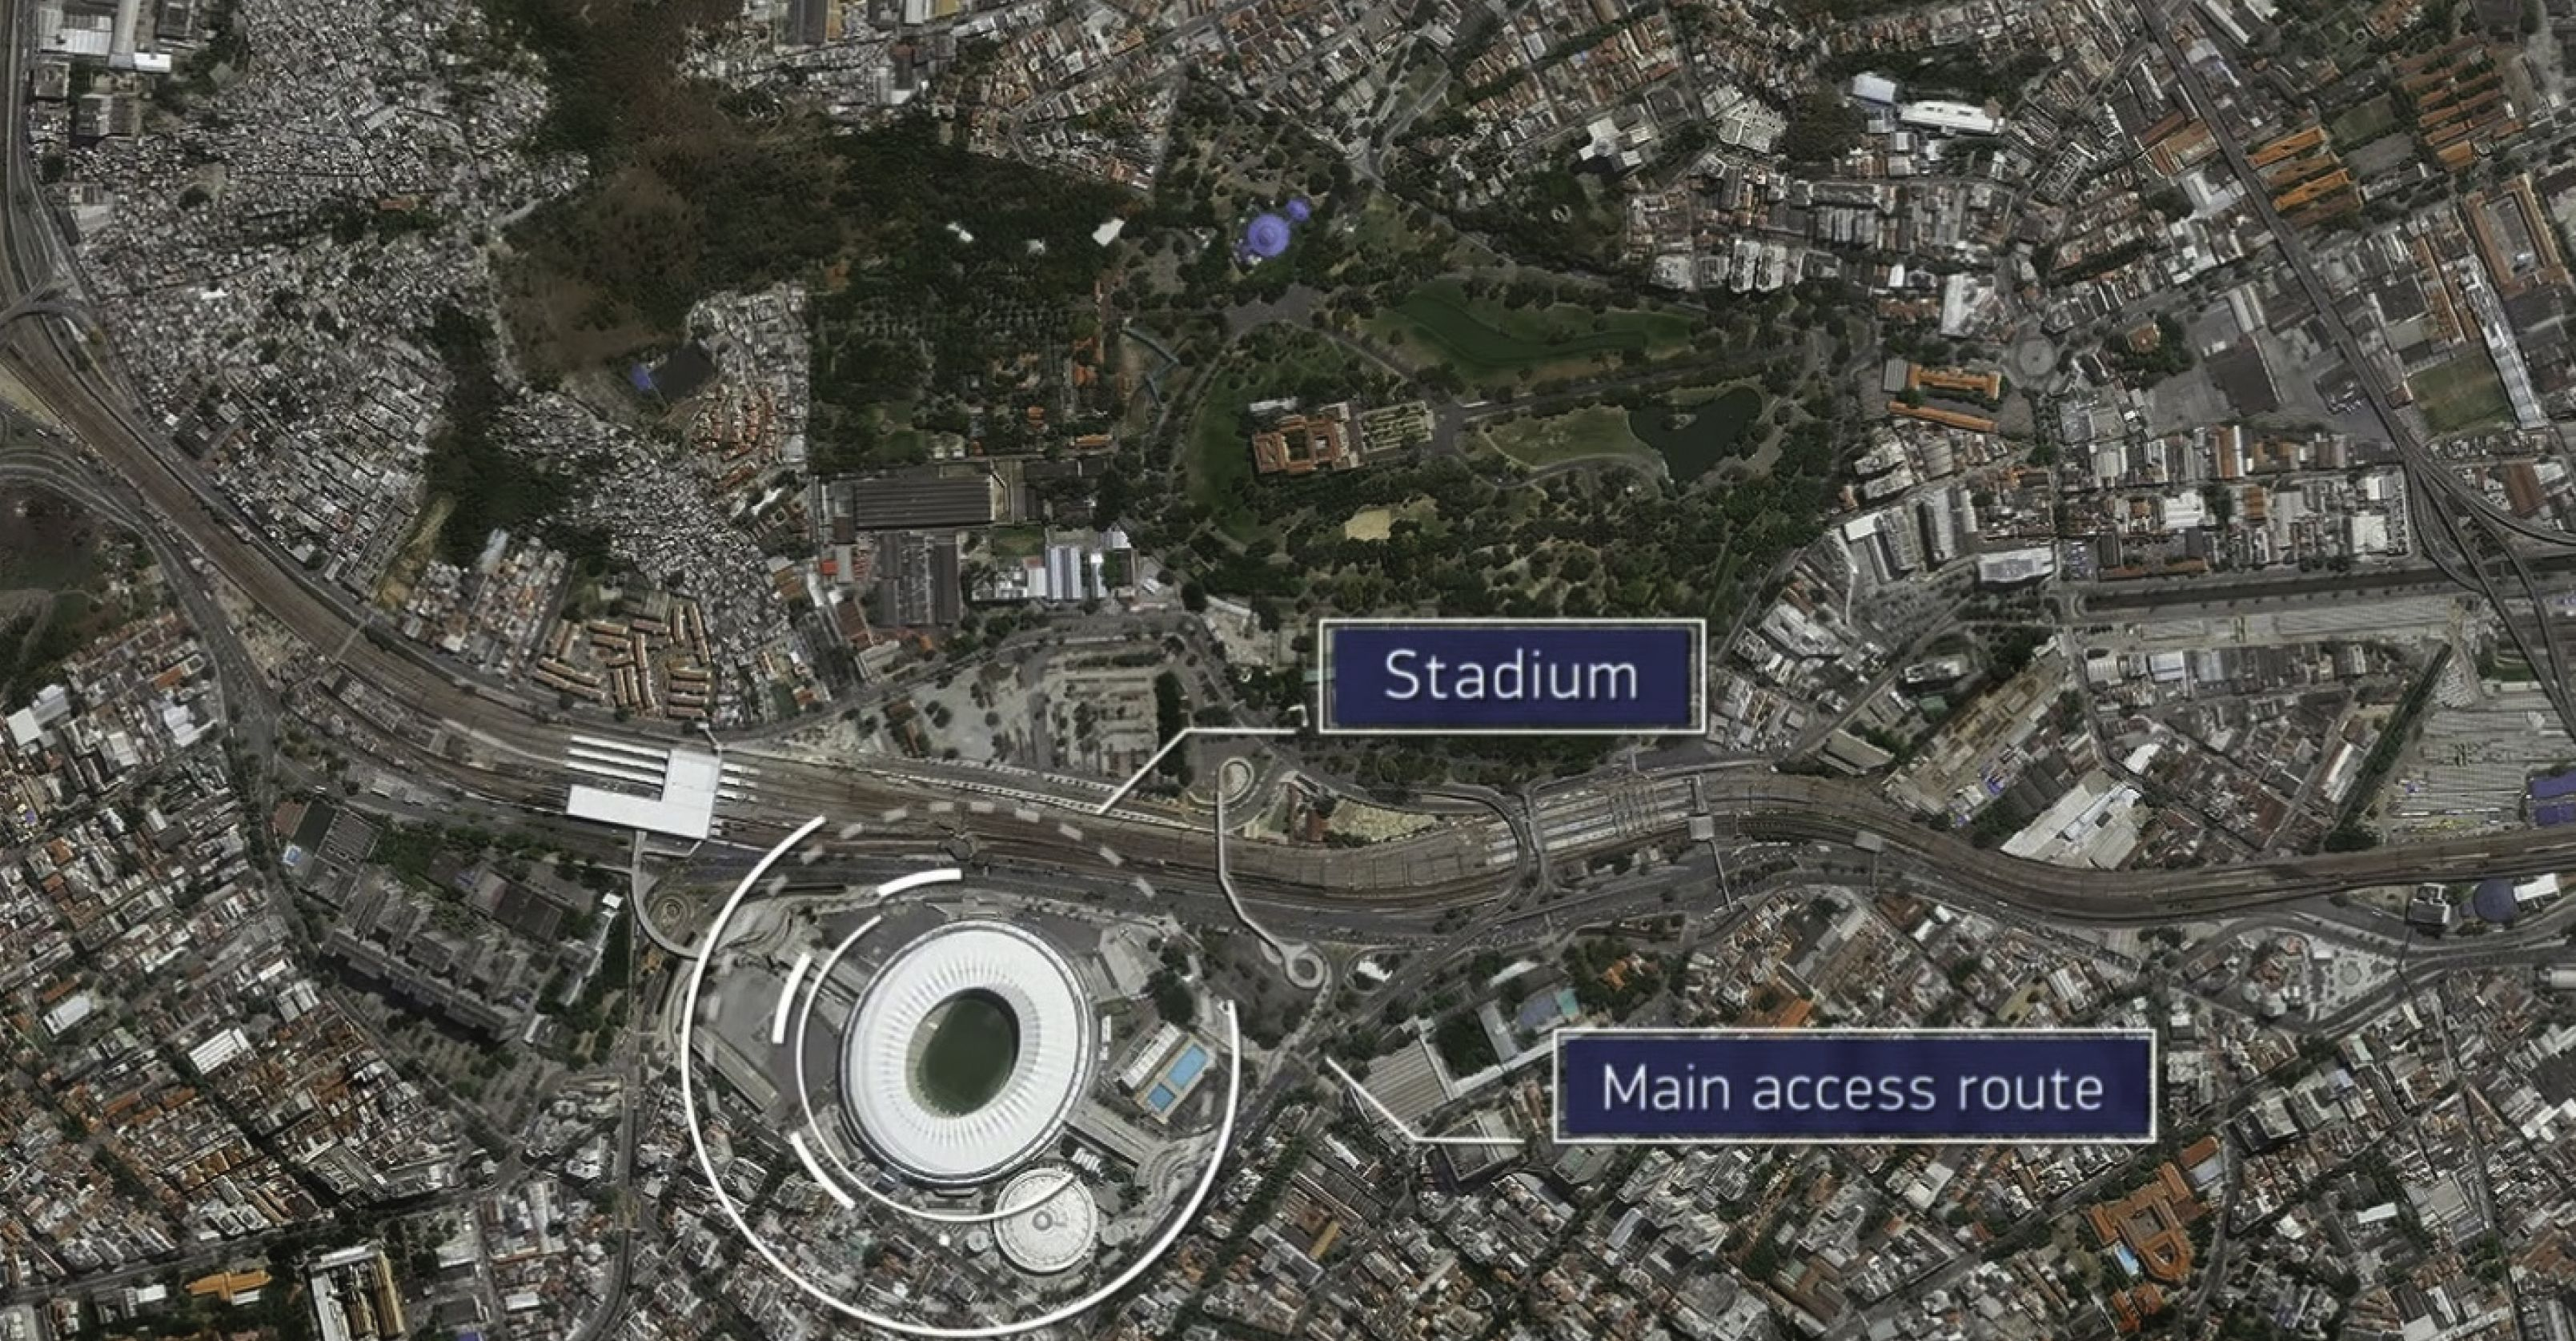 Maracanã Stadium in Rio de Janeiro, Brazil as seen through satellite imagery of DigitalGlobe